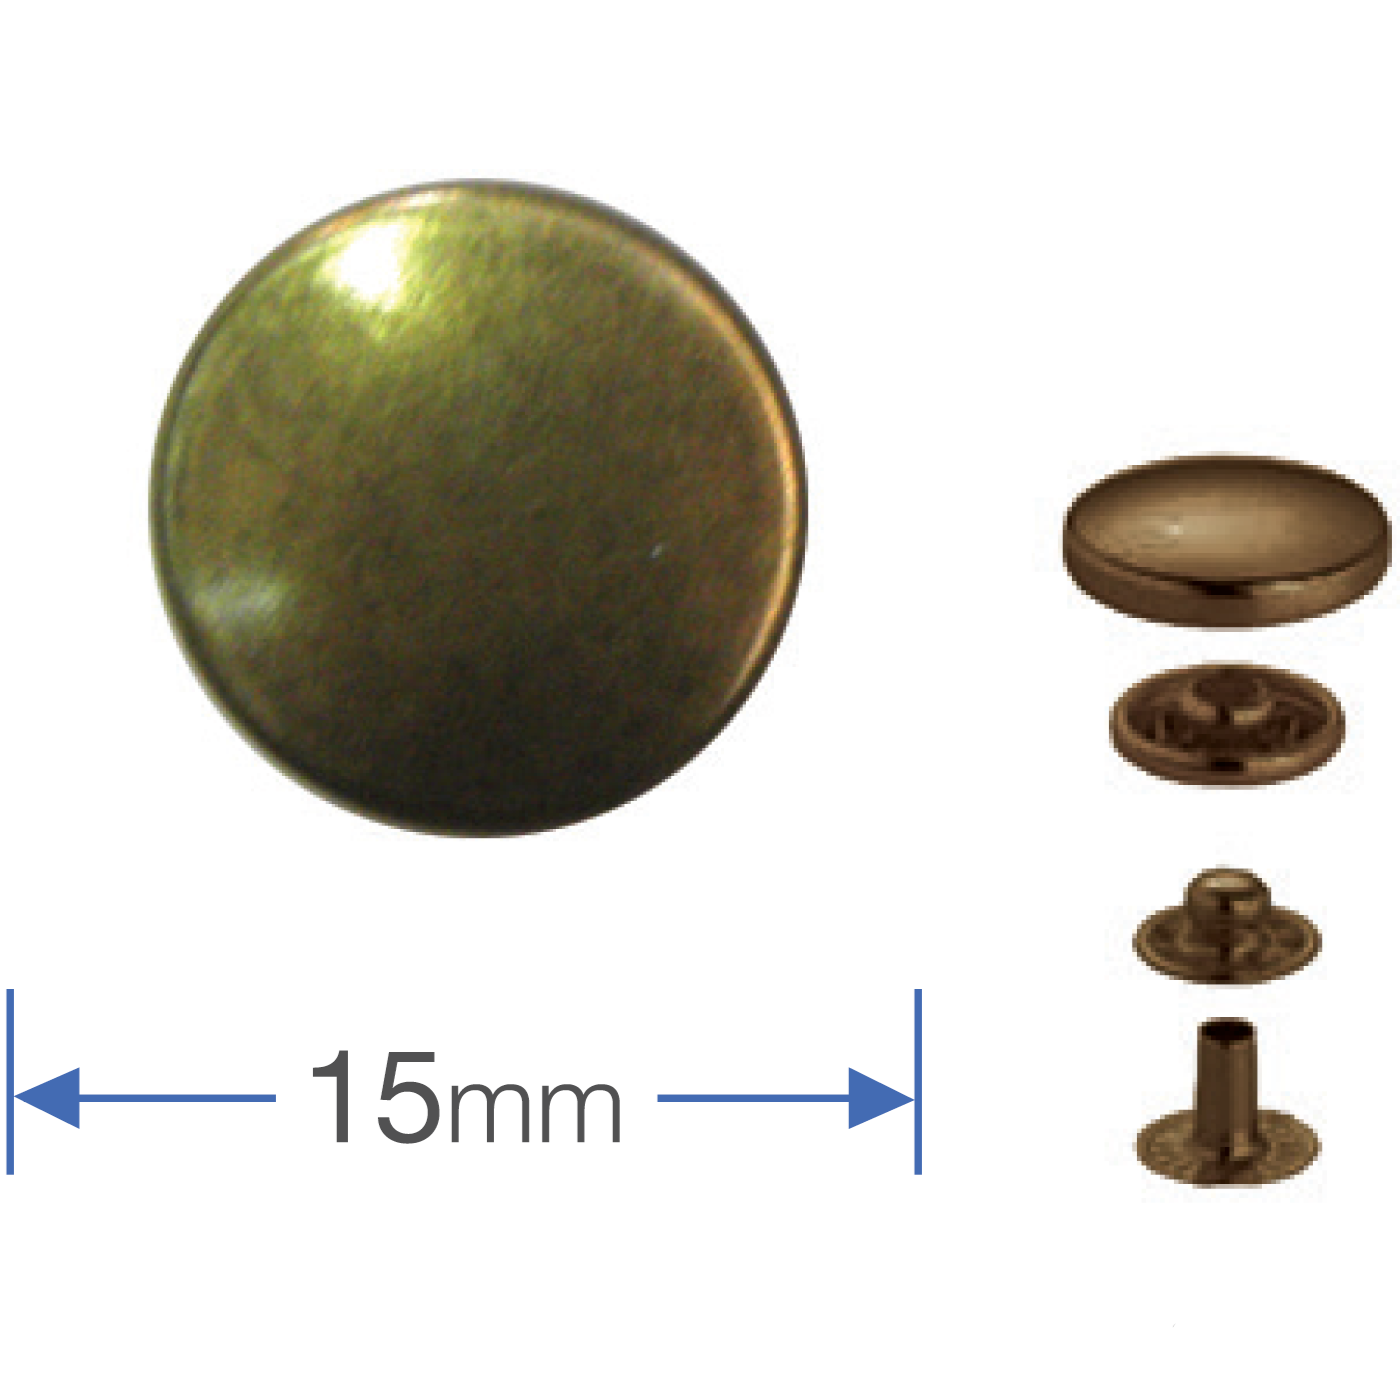 Press Studs (Non-Sew) - Antique Brass 15mm